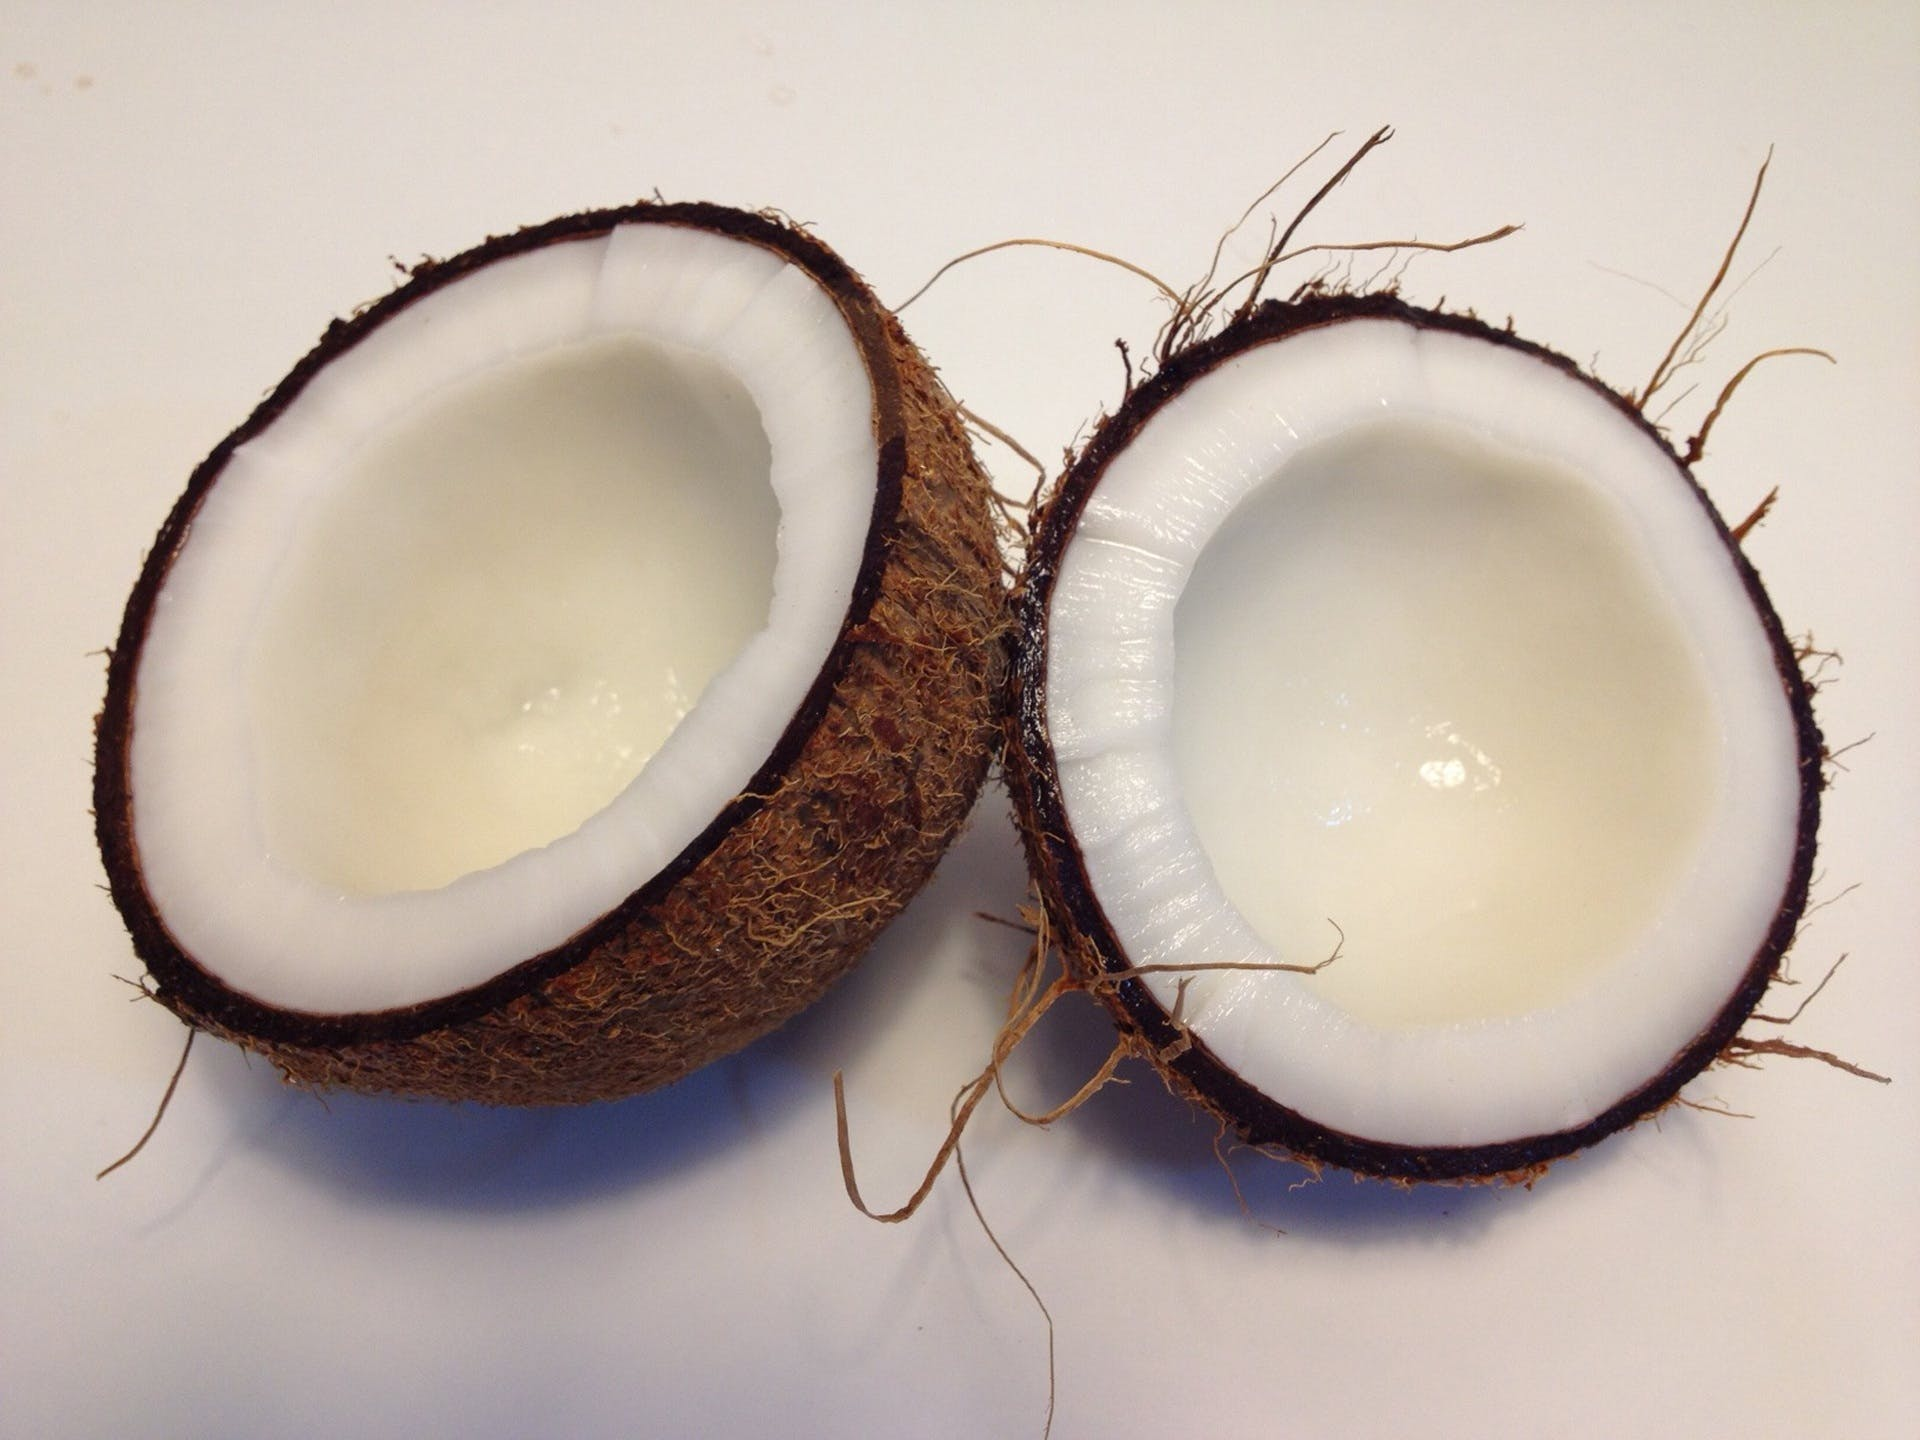 Coconut Fruit Sliced Into Two